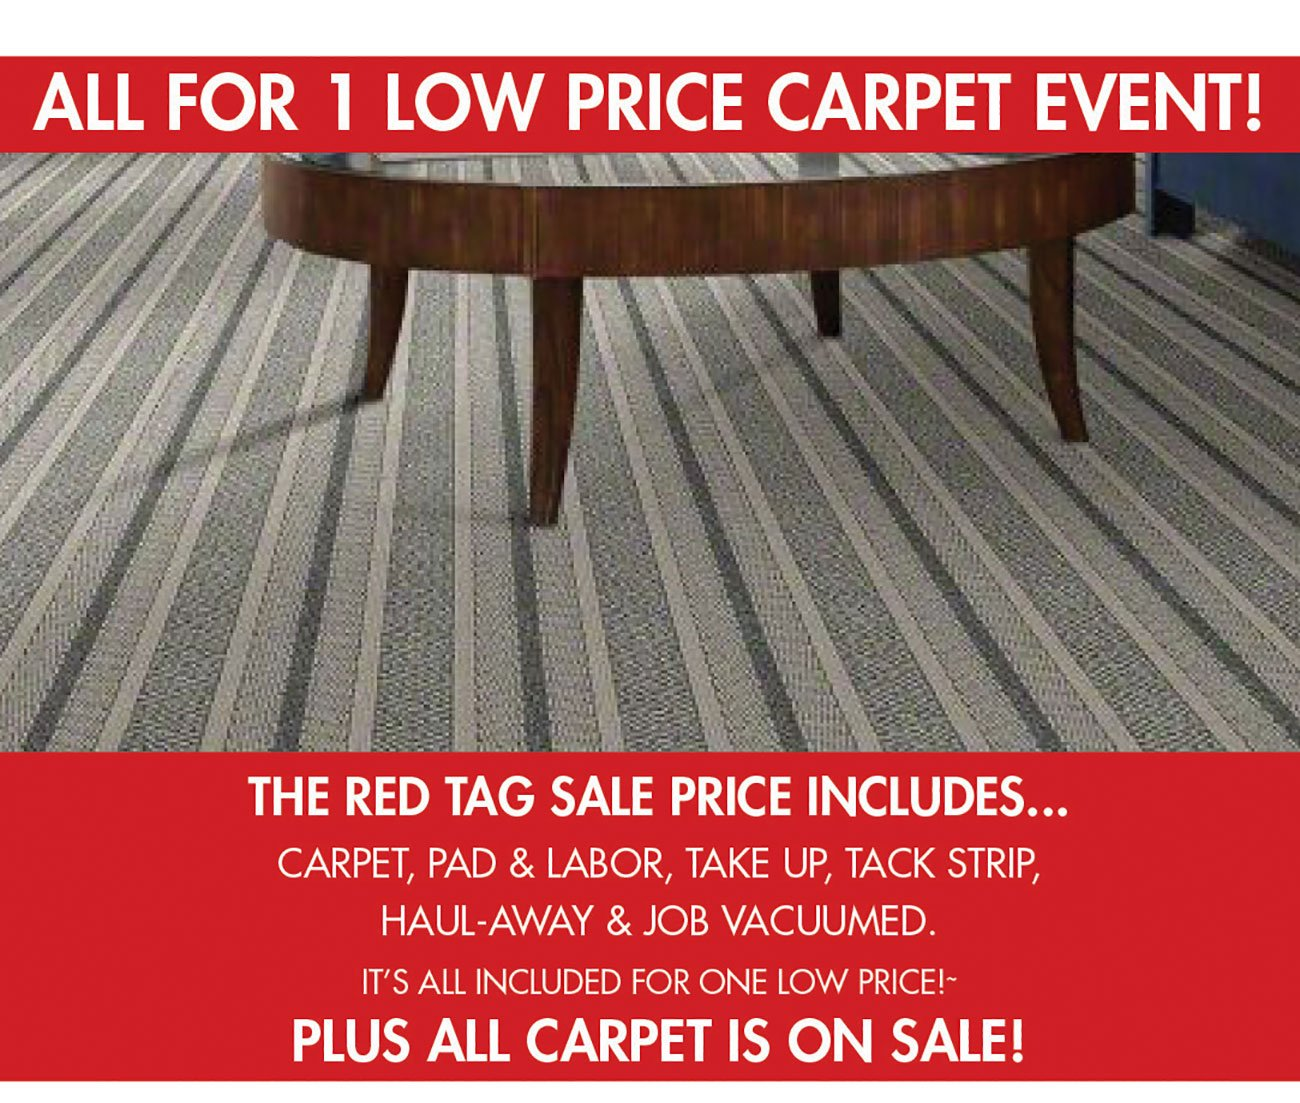 All-For-1-Low-Price-Carpet